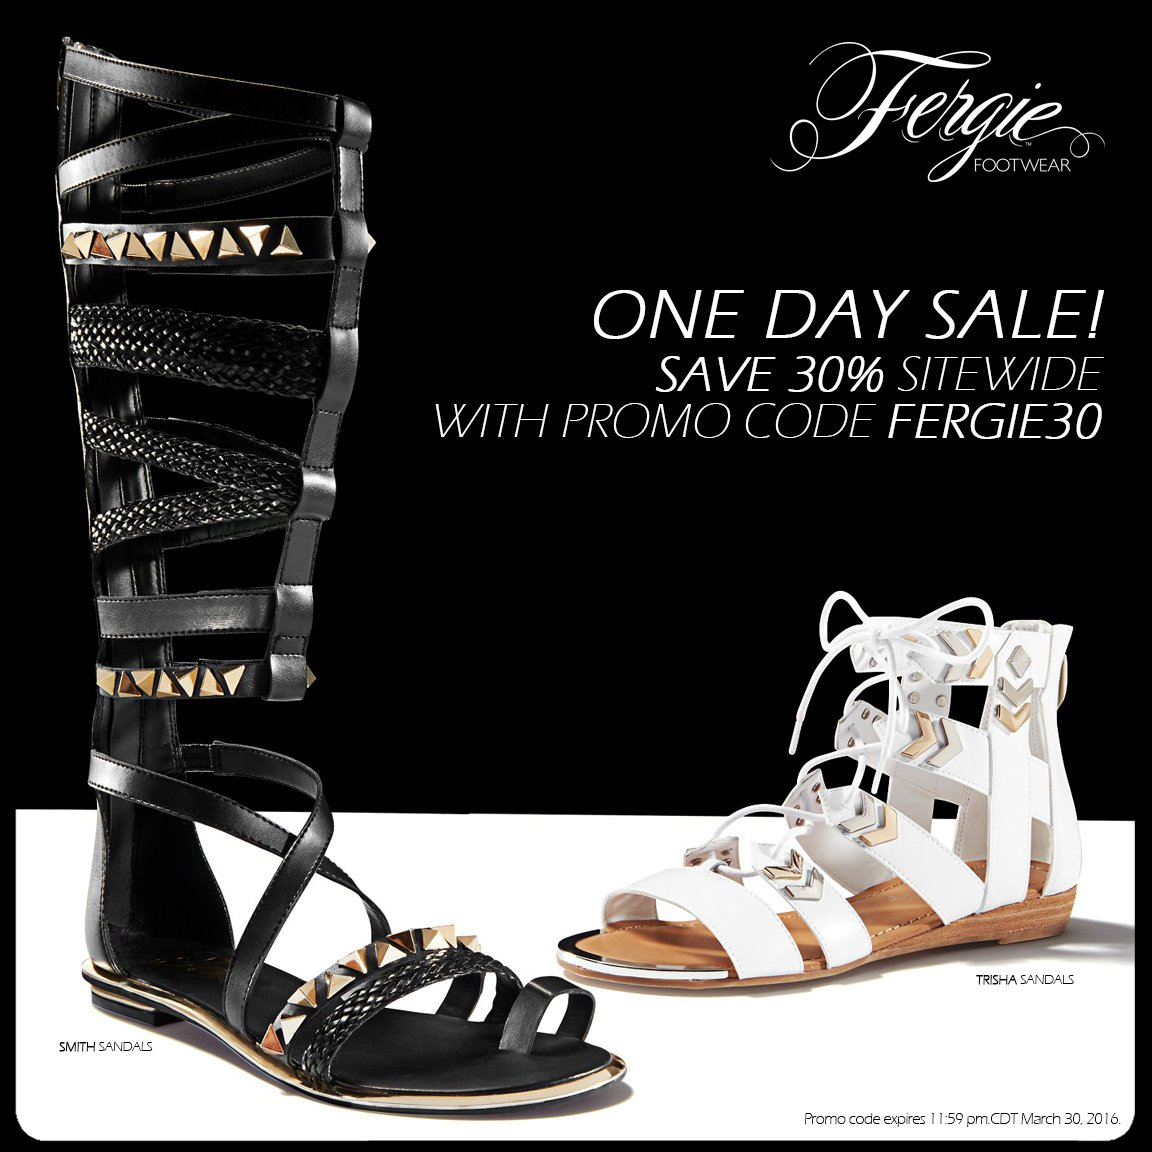 RT @FergieFootwear: #TodayOnly, take 30% OFF all @Fergie #shoes w/ #promocode FERGIE30!???? #shoesale #shoeshopping https://t.co/SKXmVHcjxn ht…